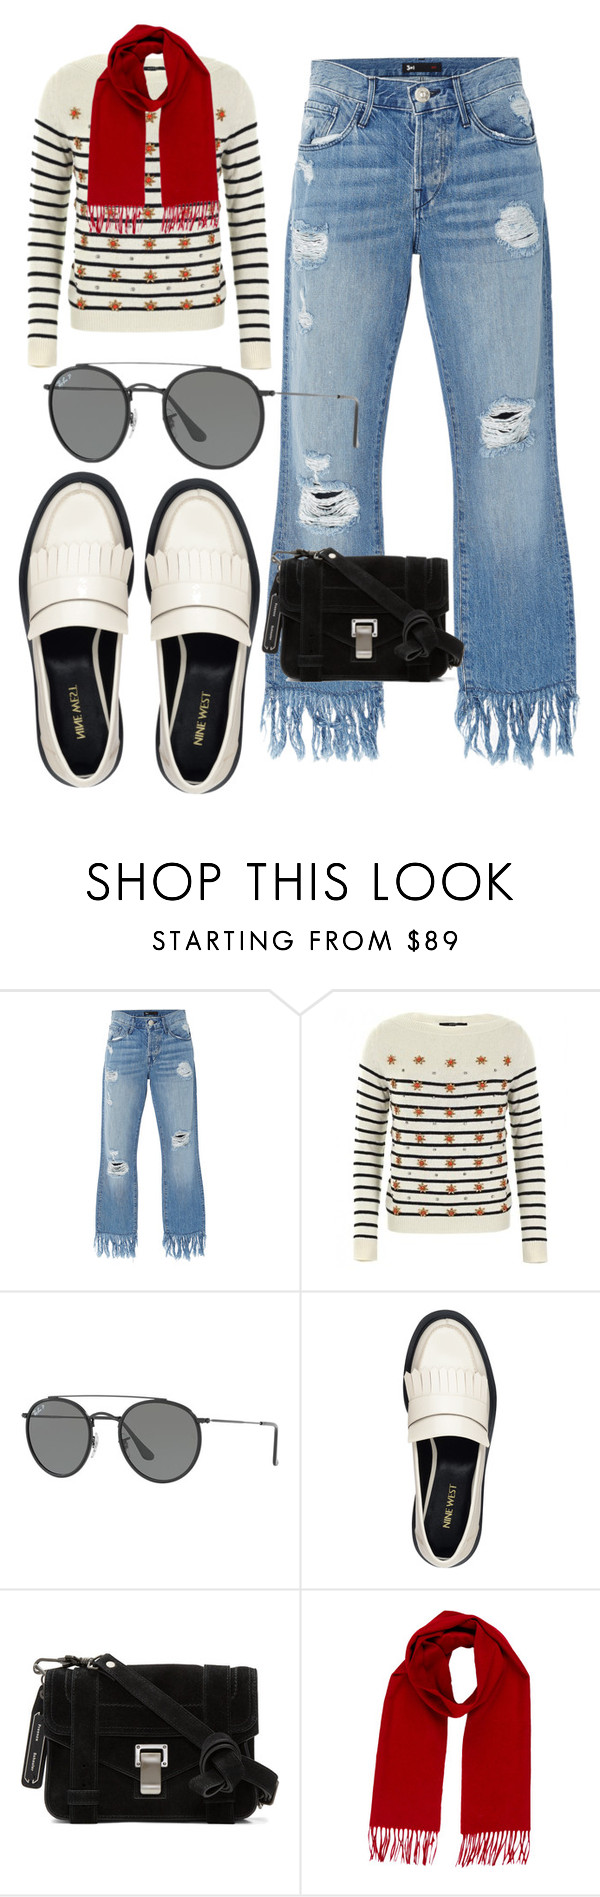 """""""Concert in the Park"""" by mdfletch ❤ liked on Polyvore featuring 3x1, Gucci, Ray-Ban, Nine West, Proenza Schouler, Yves Saint Laurent and oncert"""